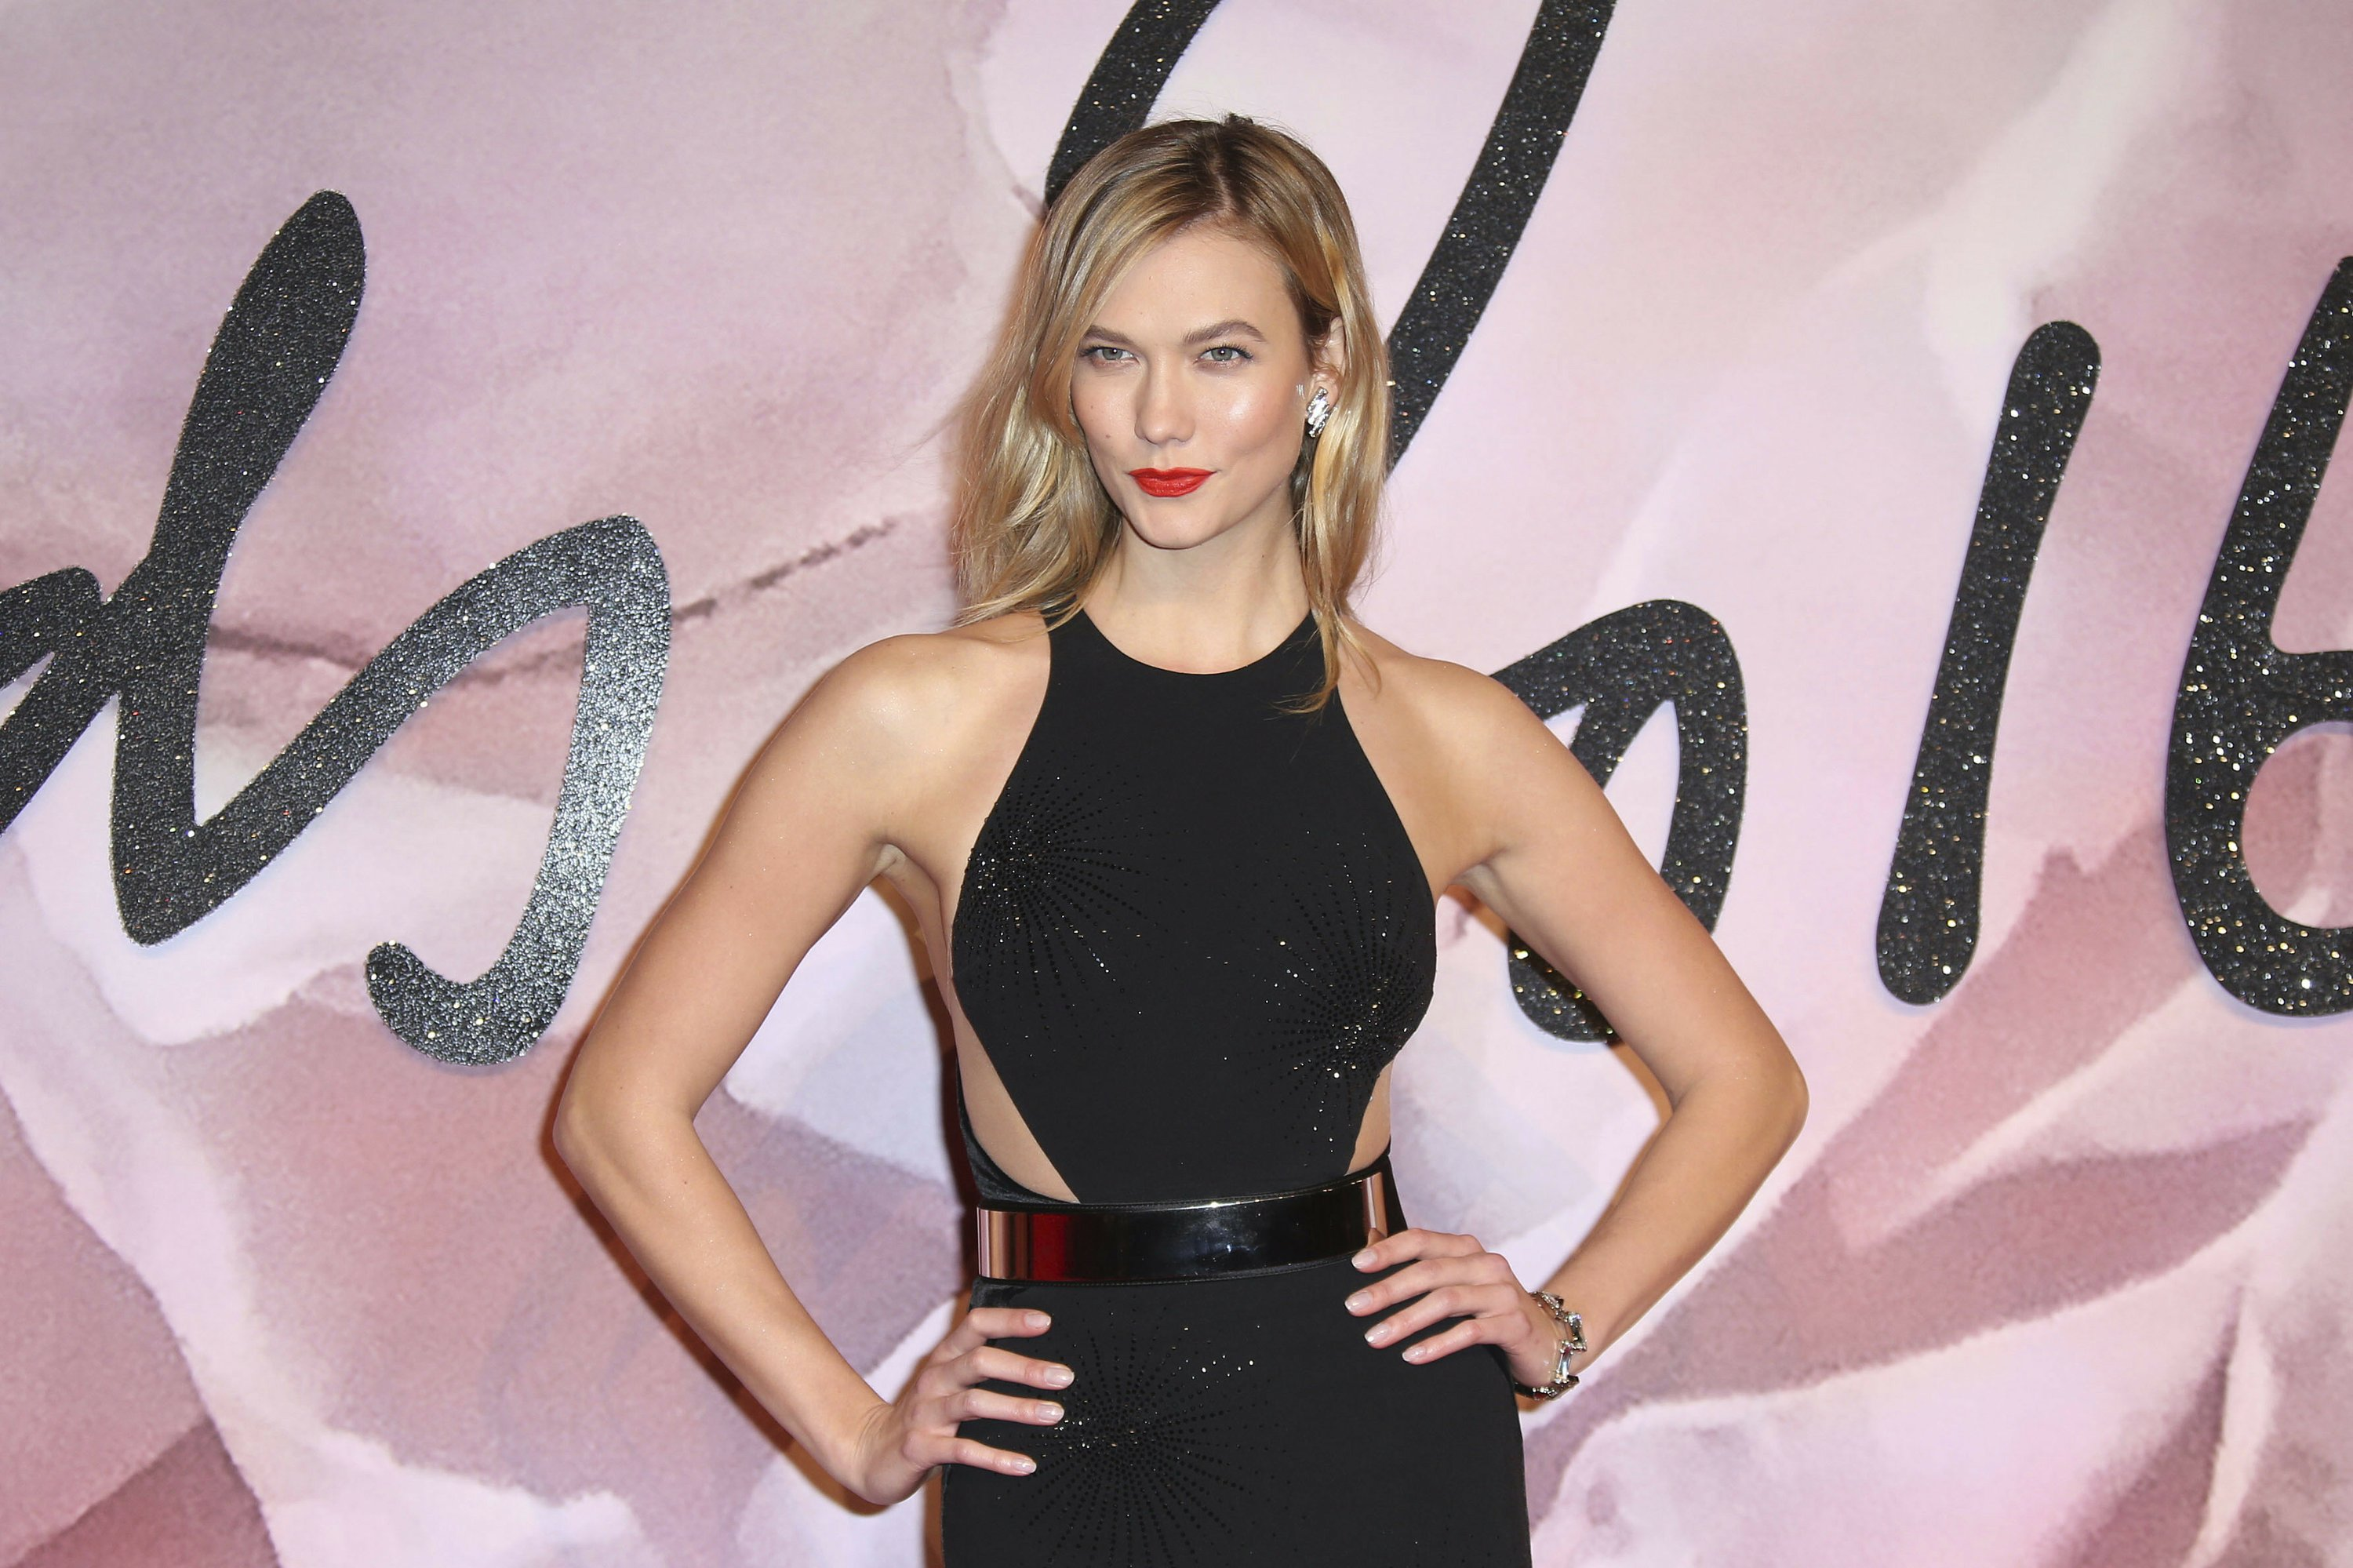 Karlie Kloss APOLOGIZES after Backlash for Dressing as Geisha for Vogue Diversity Issue